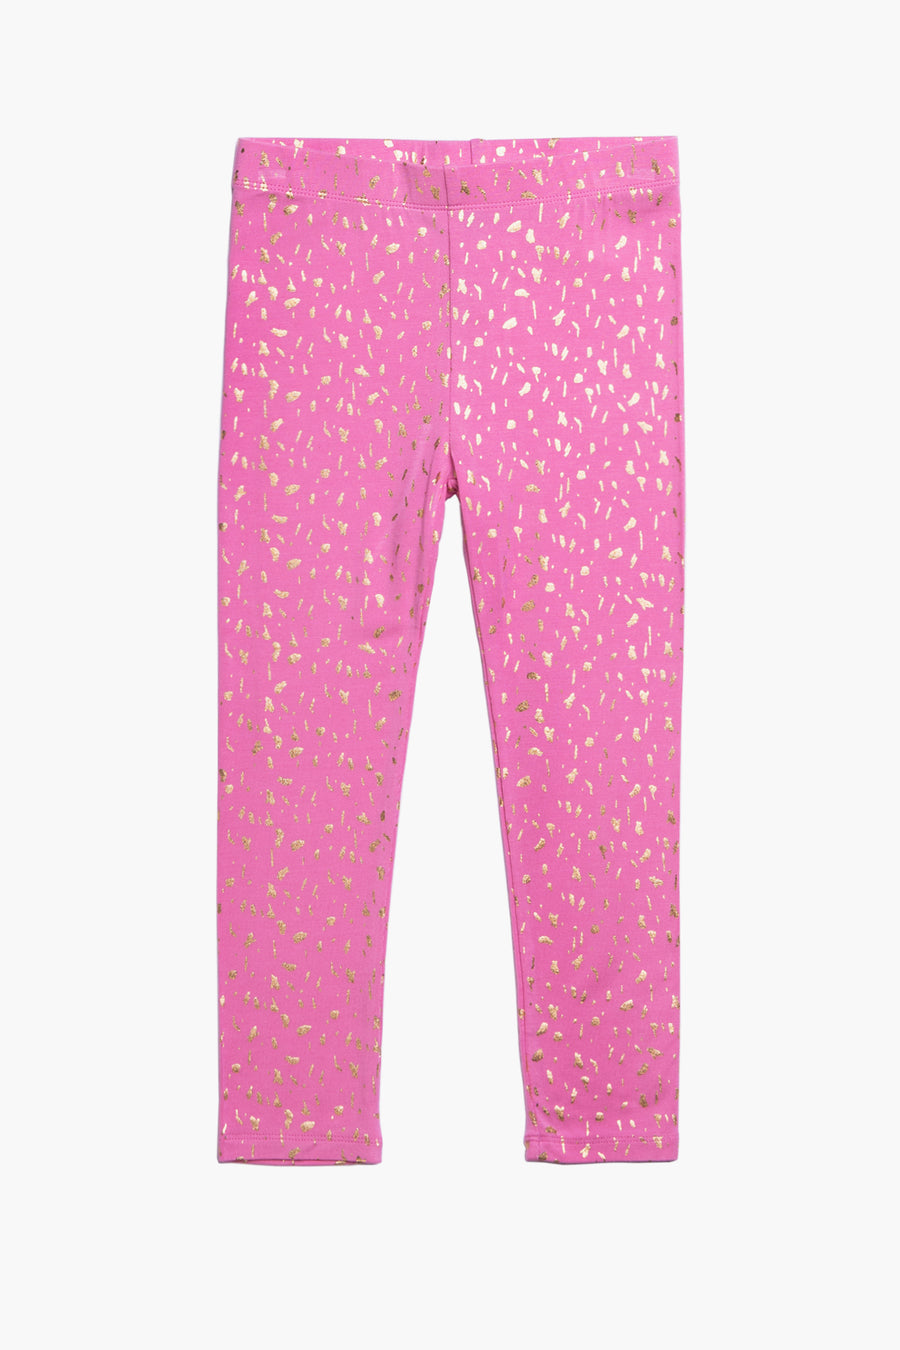 Imoga Alyssa Girls Leggings - Confetti Candy